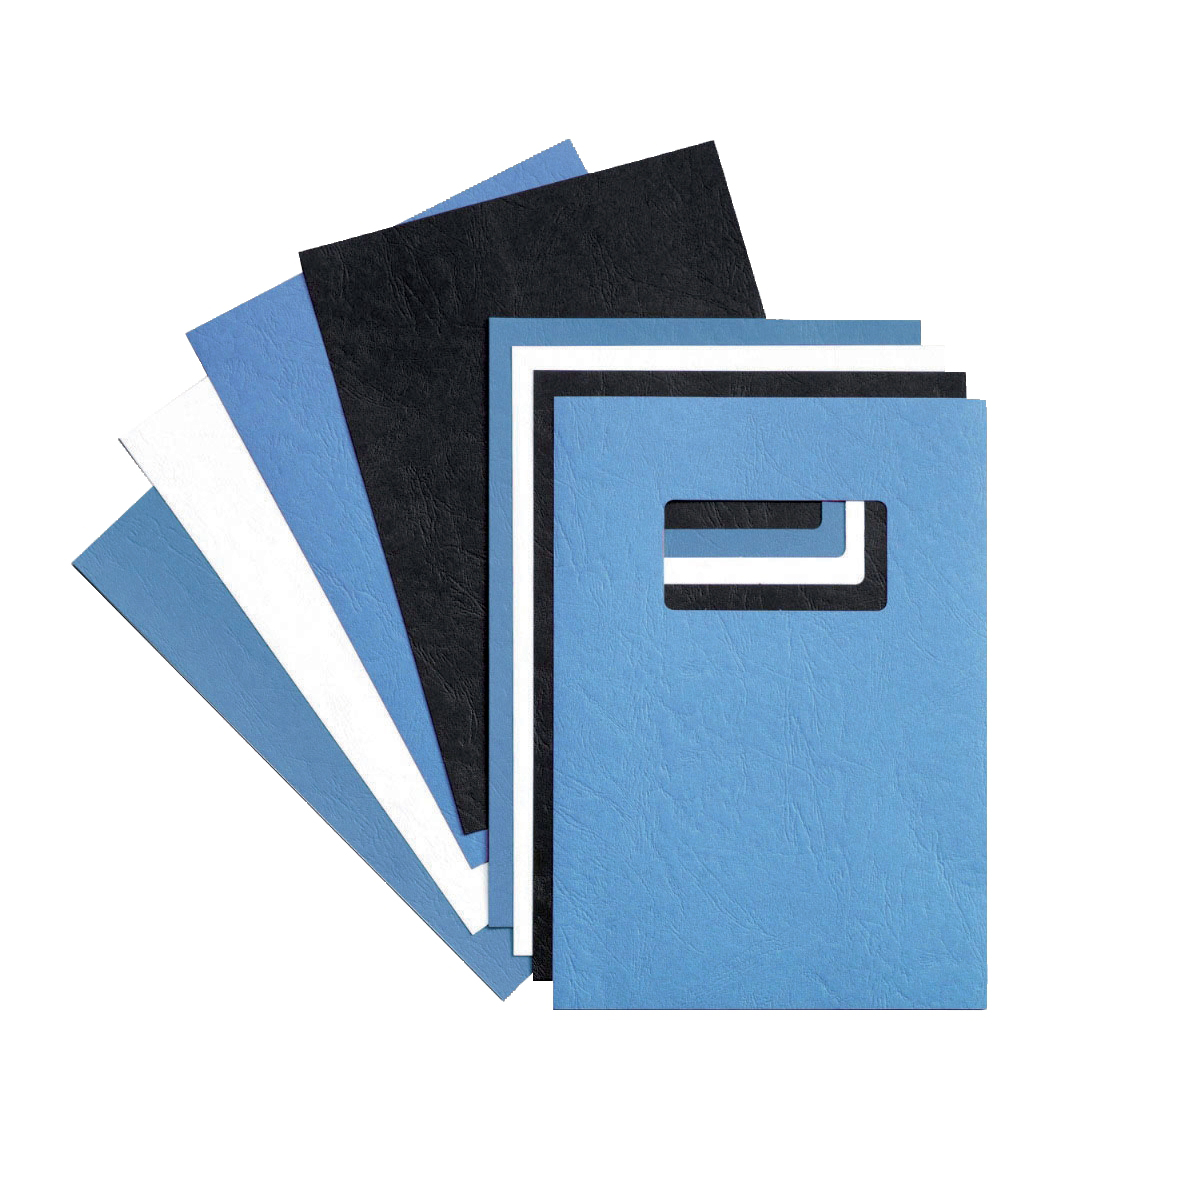 Cover Boards GBC Binding Covers Leatherboard Window 250gsm A4 Blue Ref 46735E Pack 25x2